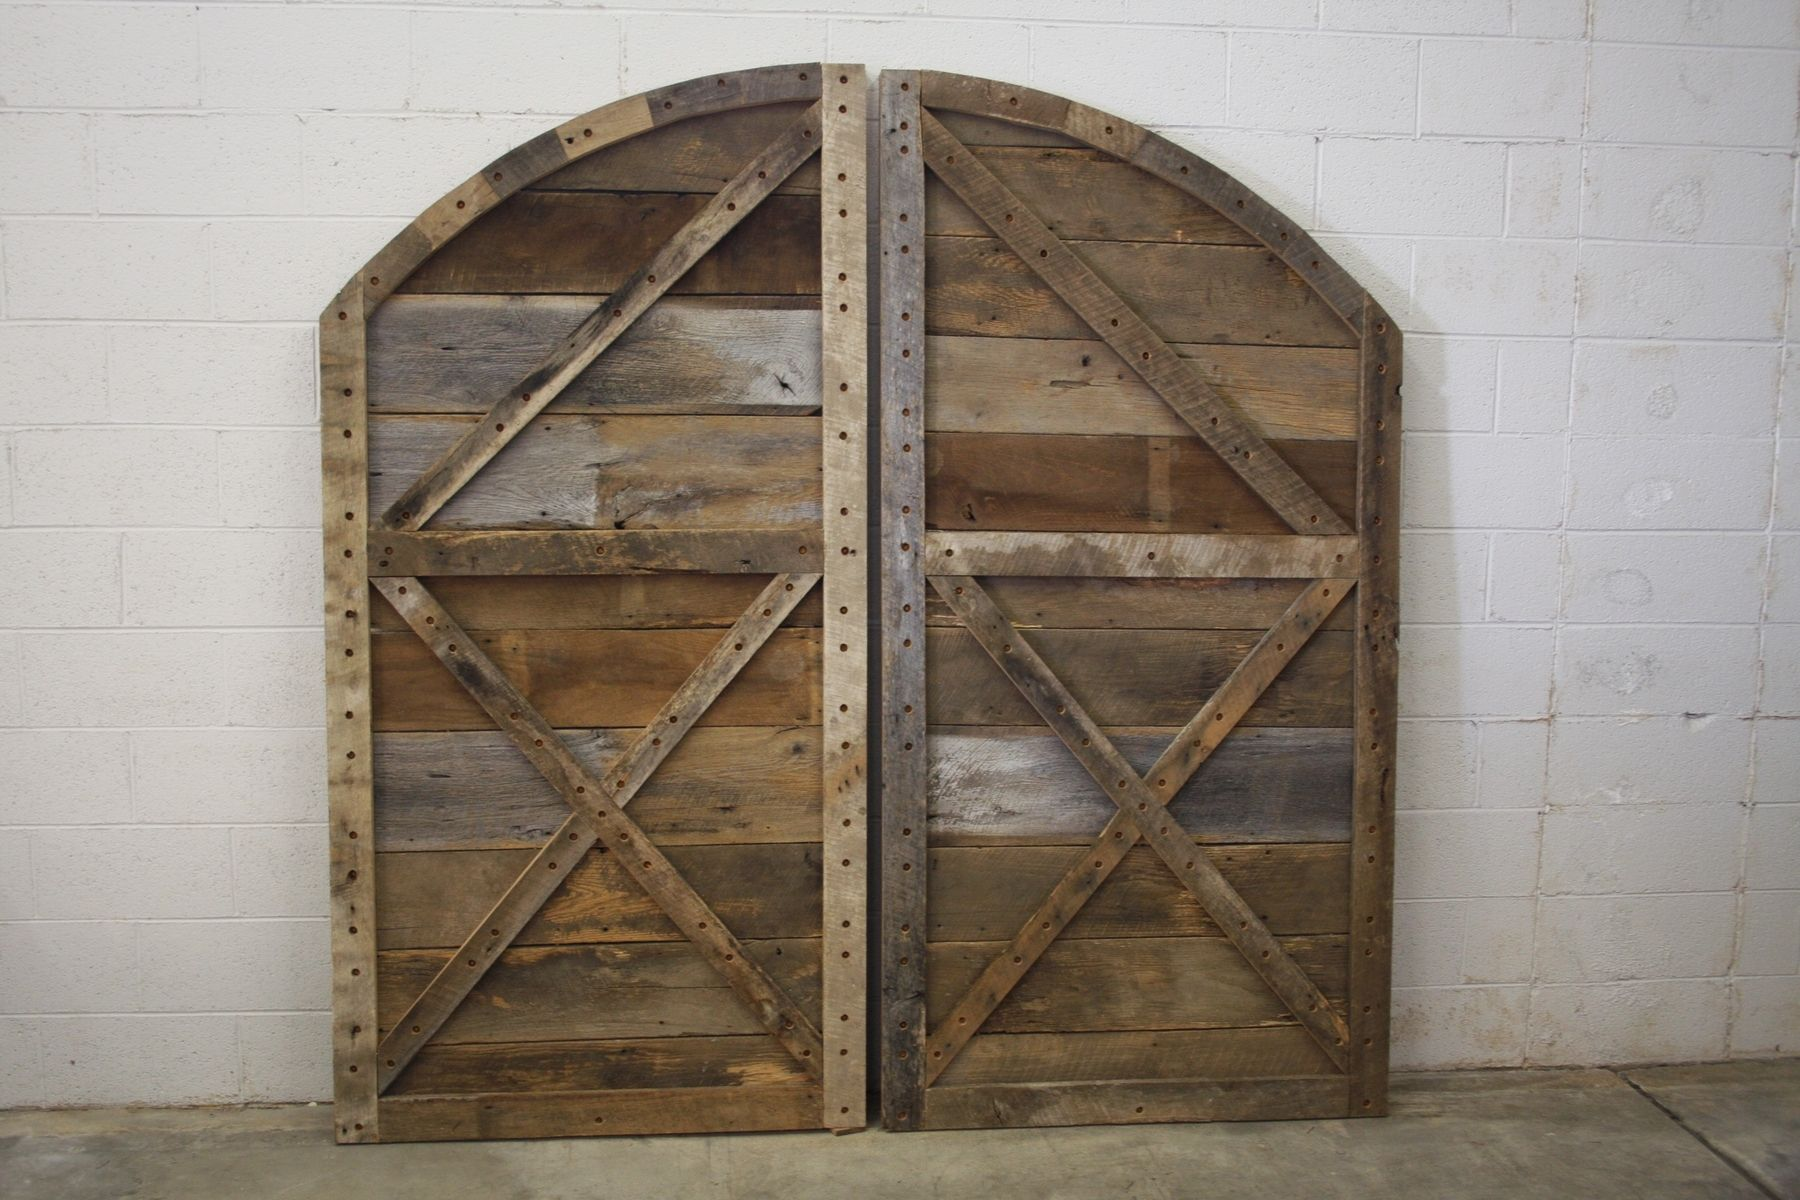 Buy Hand Crafted Arched Top Barn Doors, made to order from Heirloom, LLC | CustomMade.com